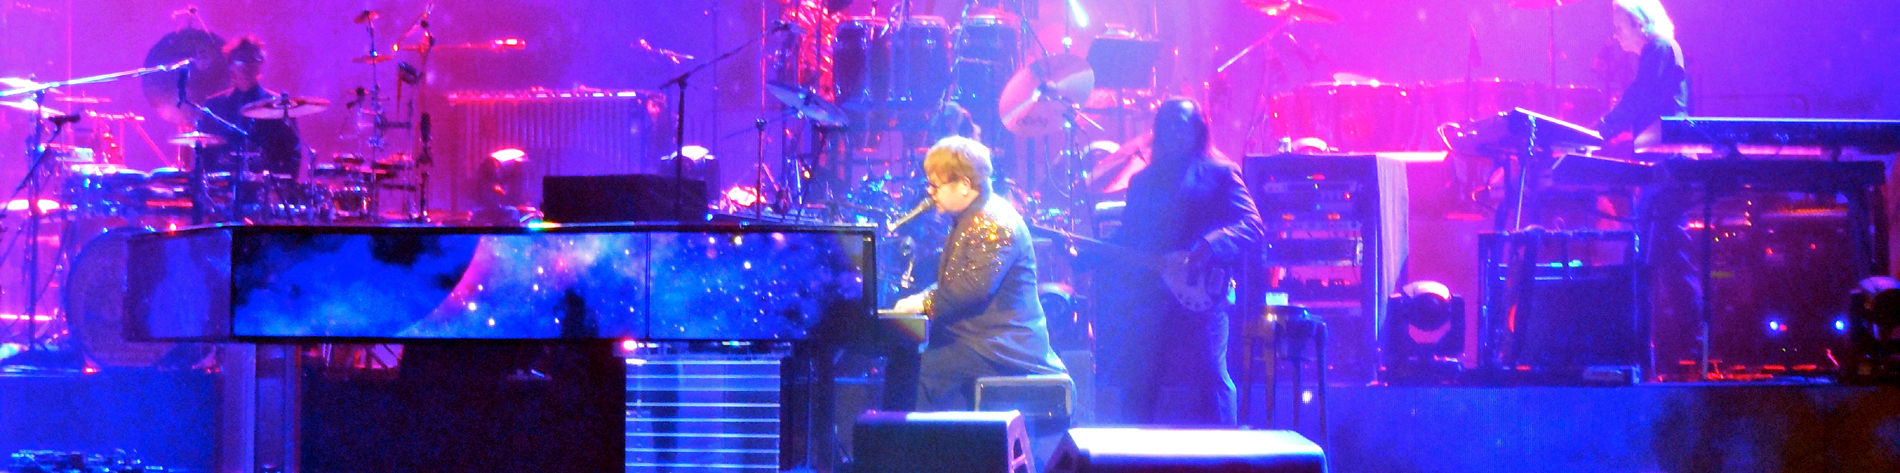 Elton John Los Angeles CA January 22, 2019 Tickets